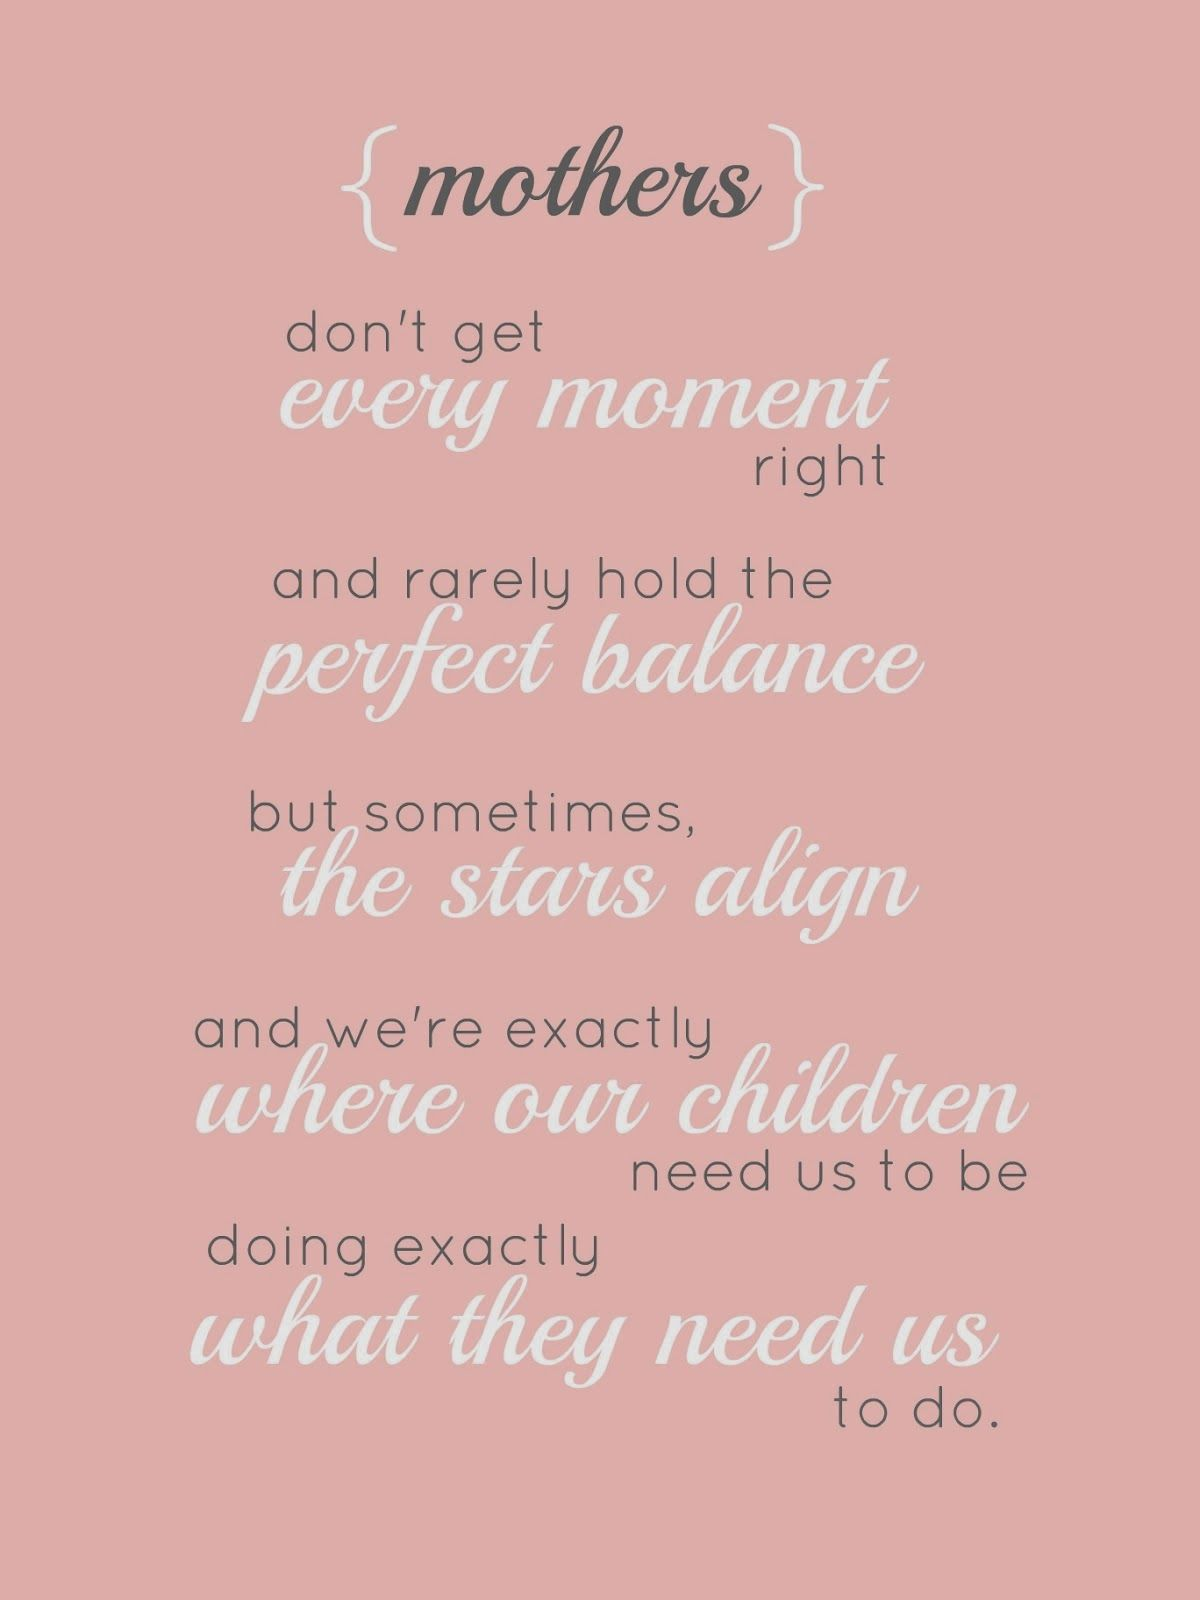 Quotes About Mother And Daughter Quotes About Mothers And Daughters  Happy Mothers Day Quotes From